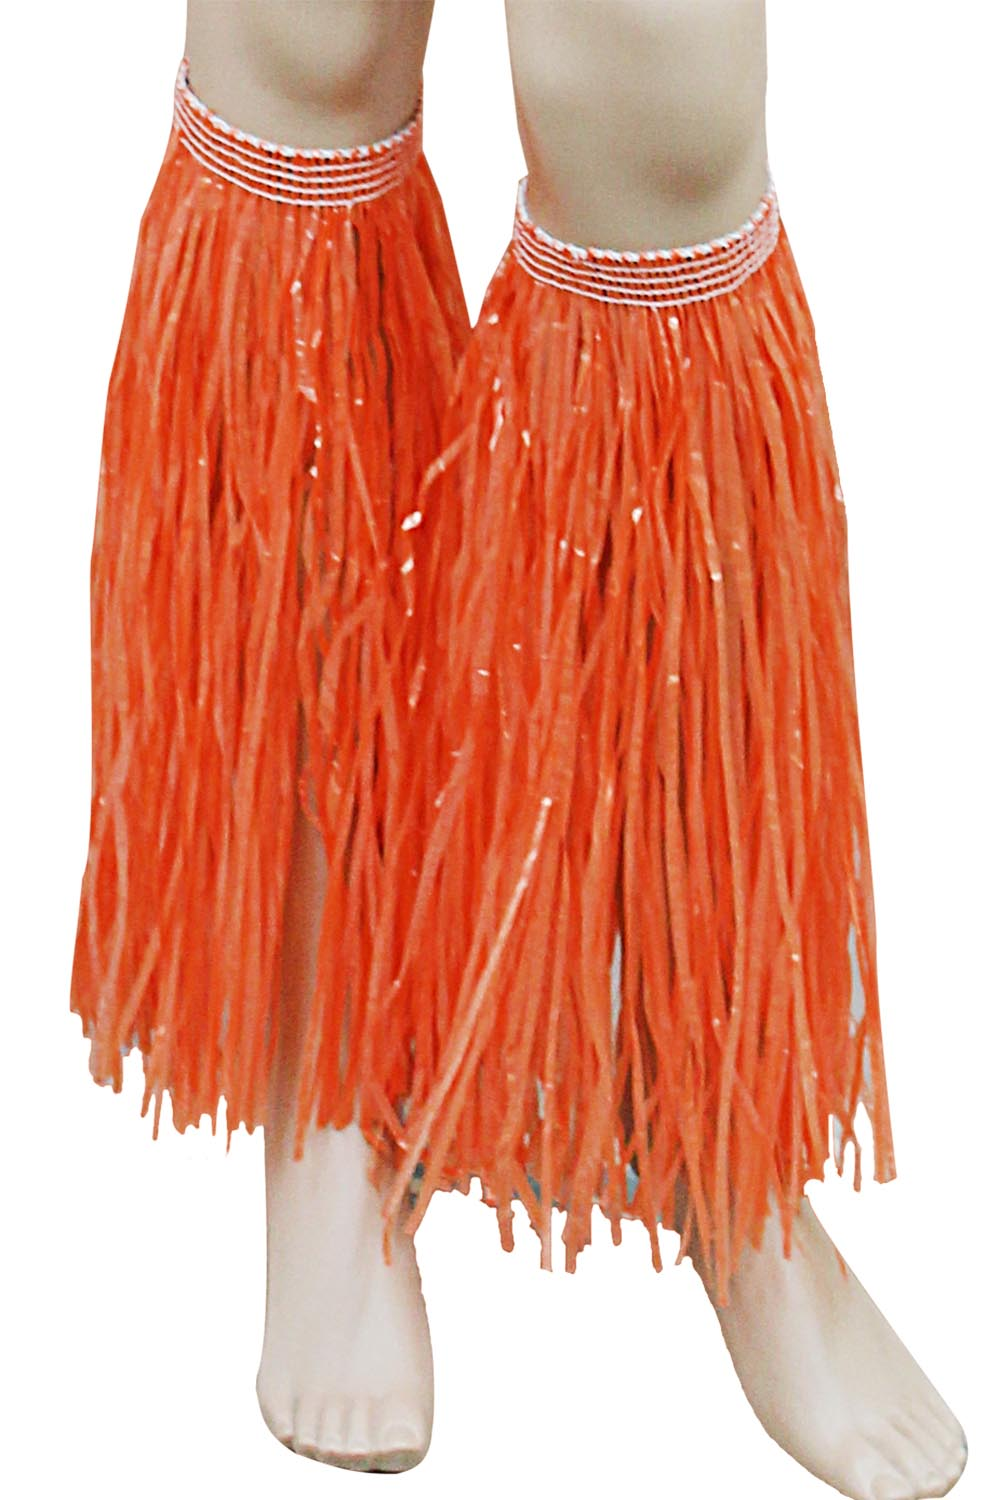 Orange Hawaiian Hula Straw Leg Cuffs